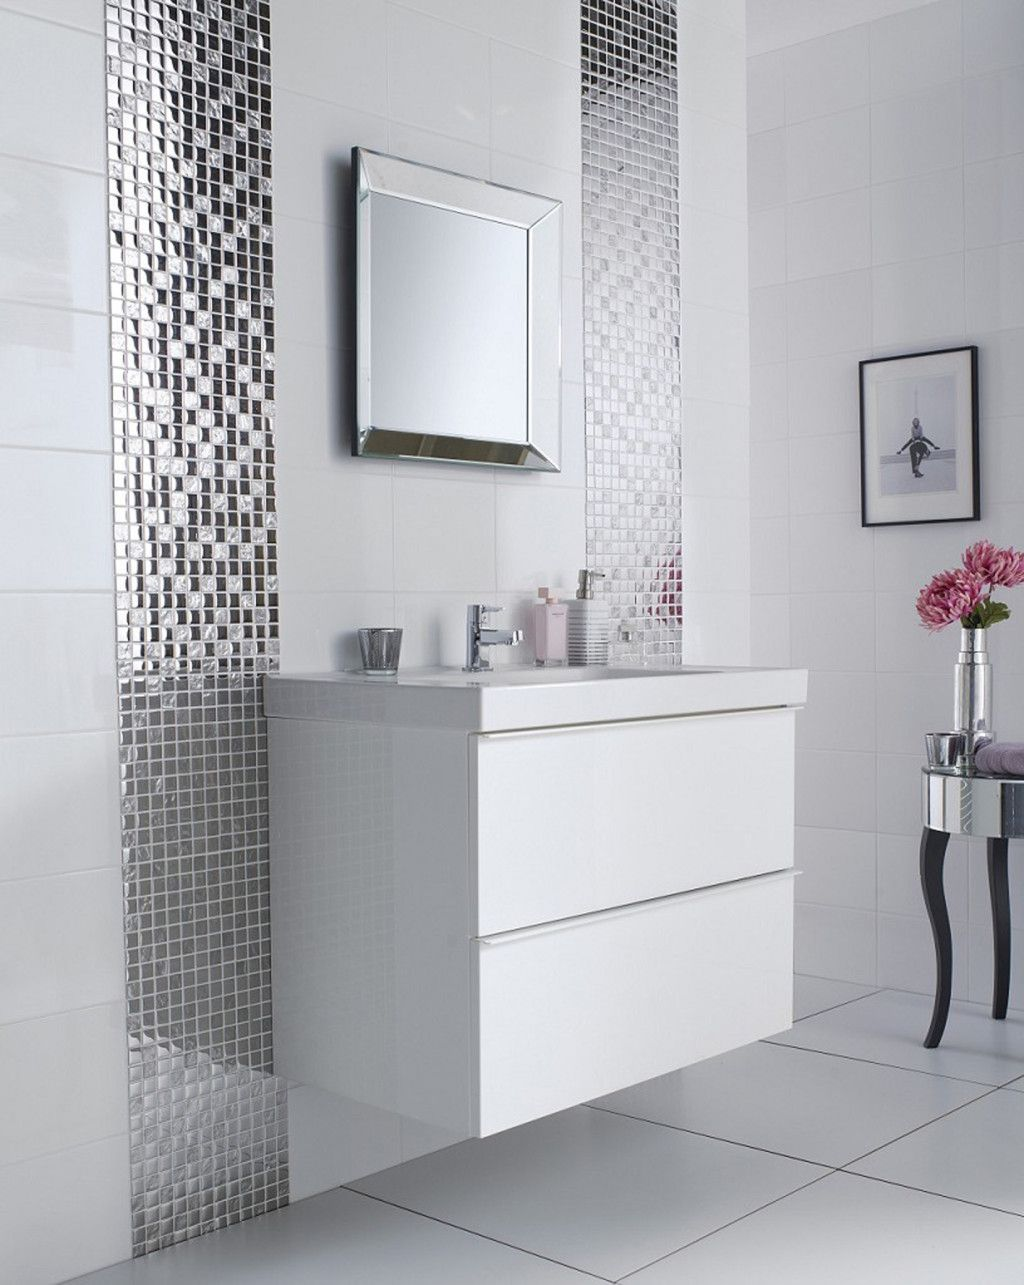 Bathroom Tile Ideas Grey And White with HD Resolution 1777x1333